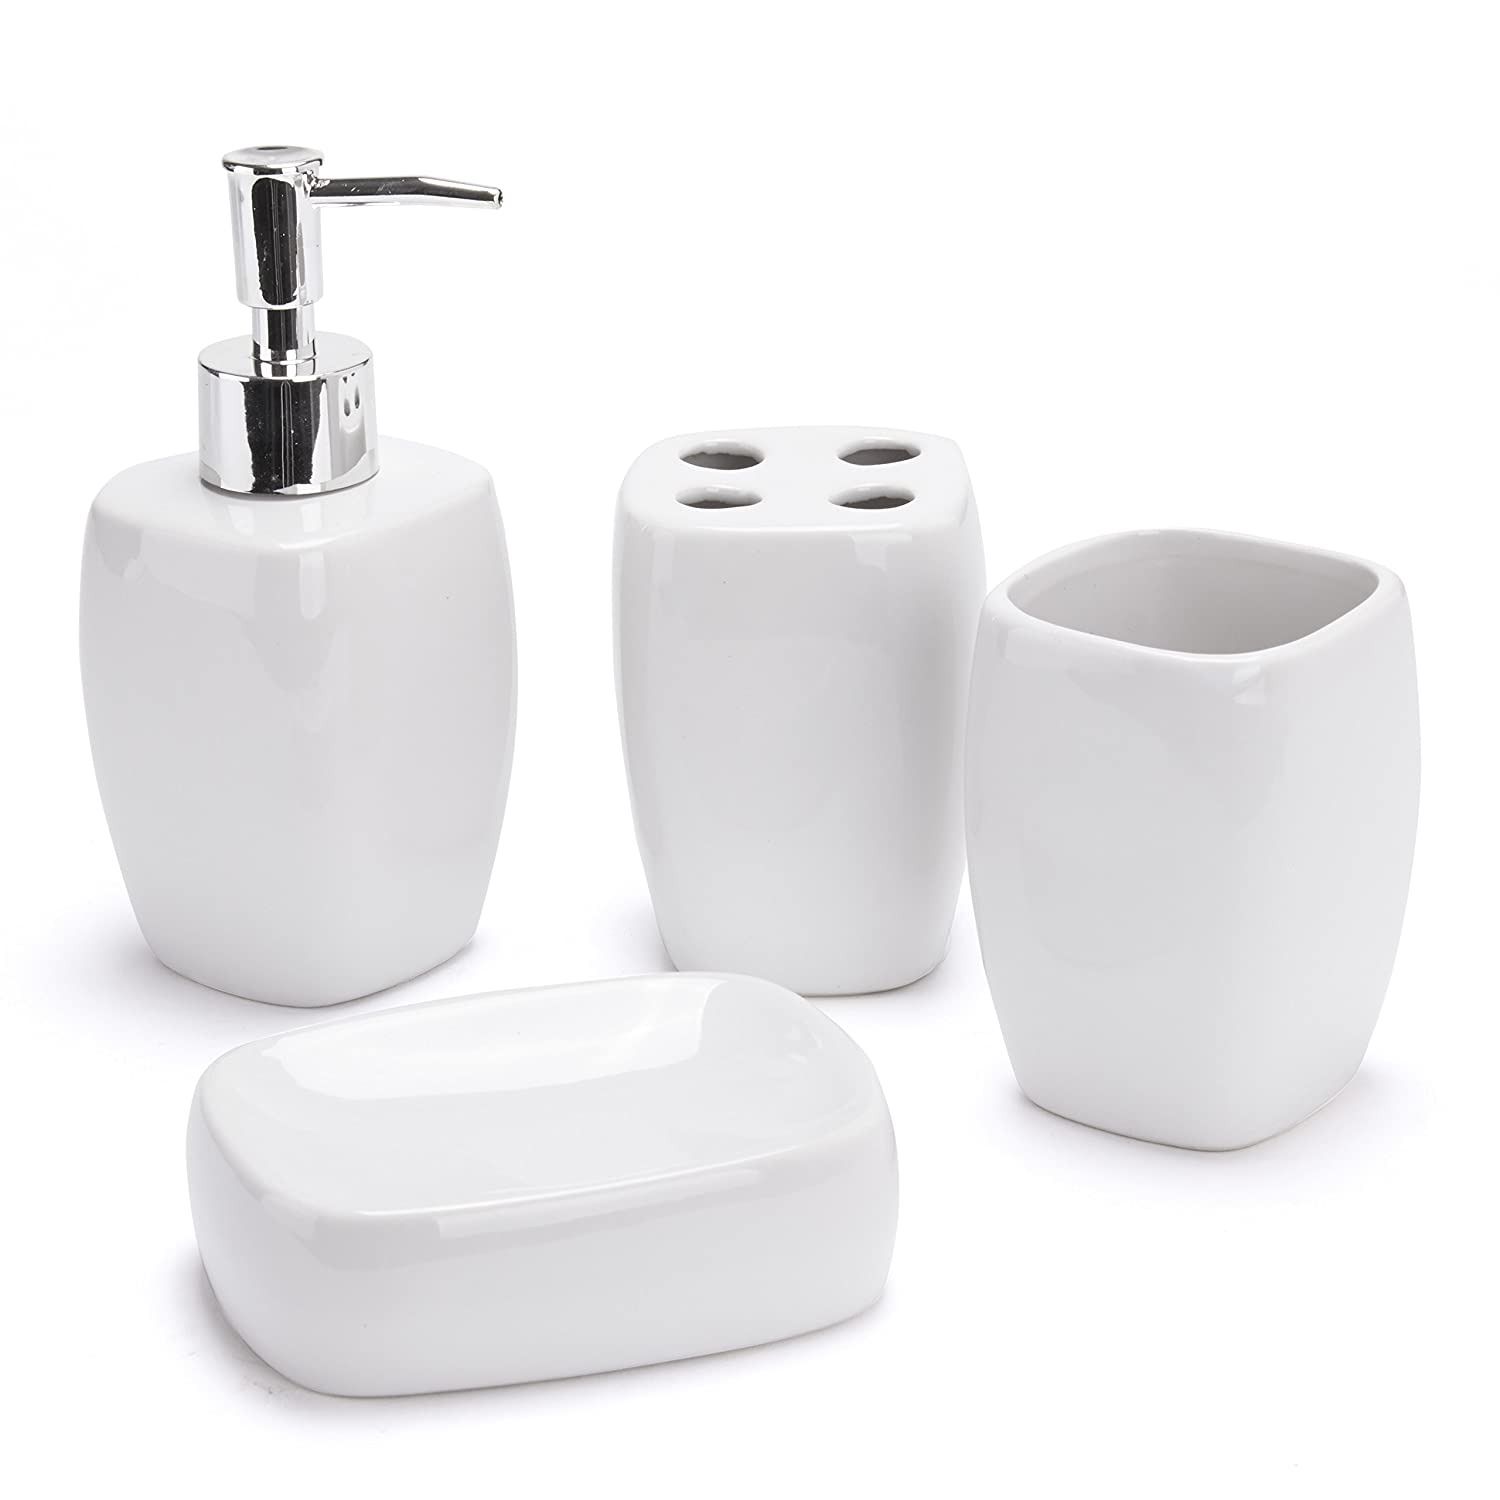 4 Piece Off White Ceramic Bathroom Accessory Set Tumbler, Soap Dish, Dispenser Homeware Needs